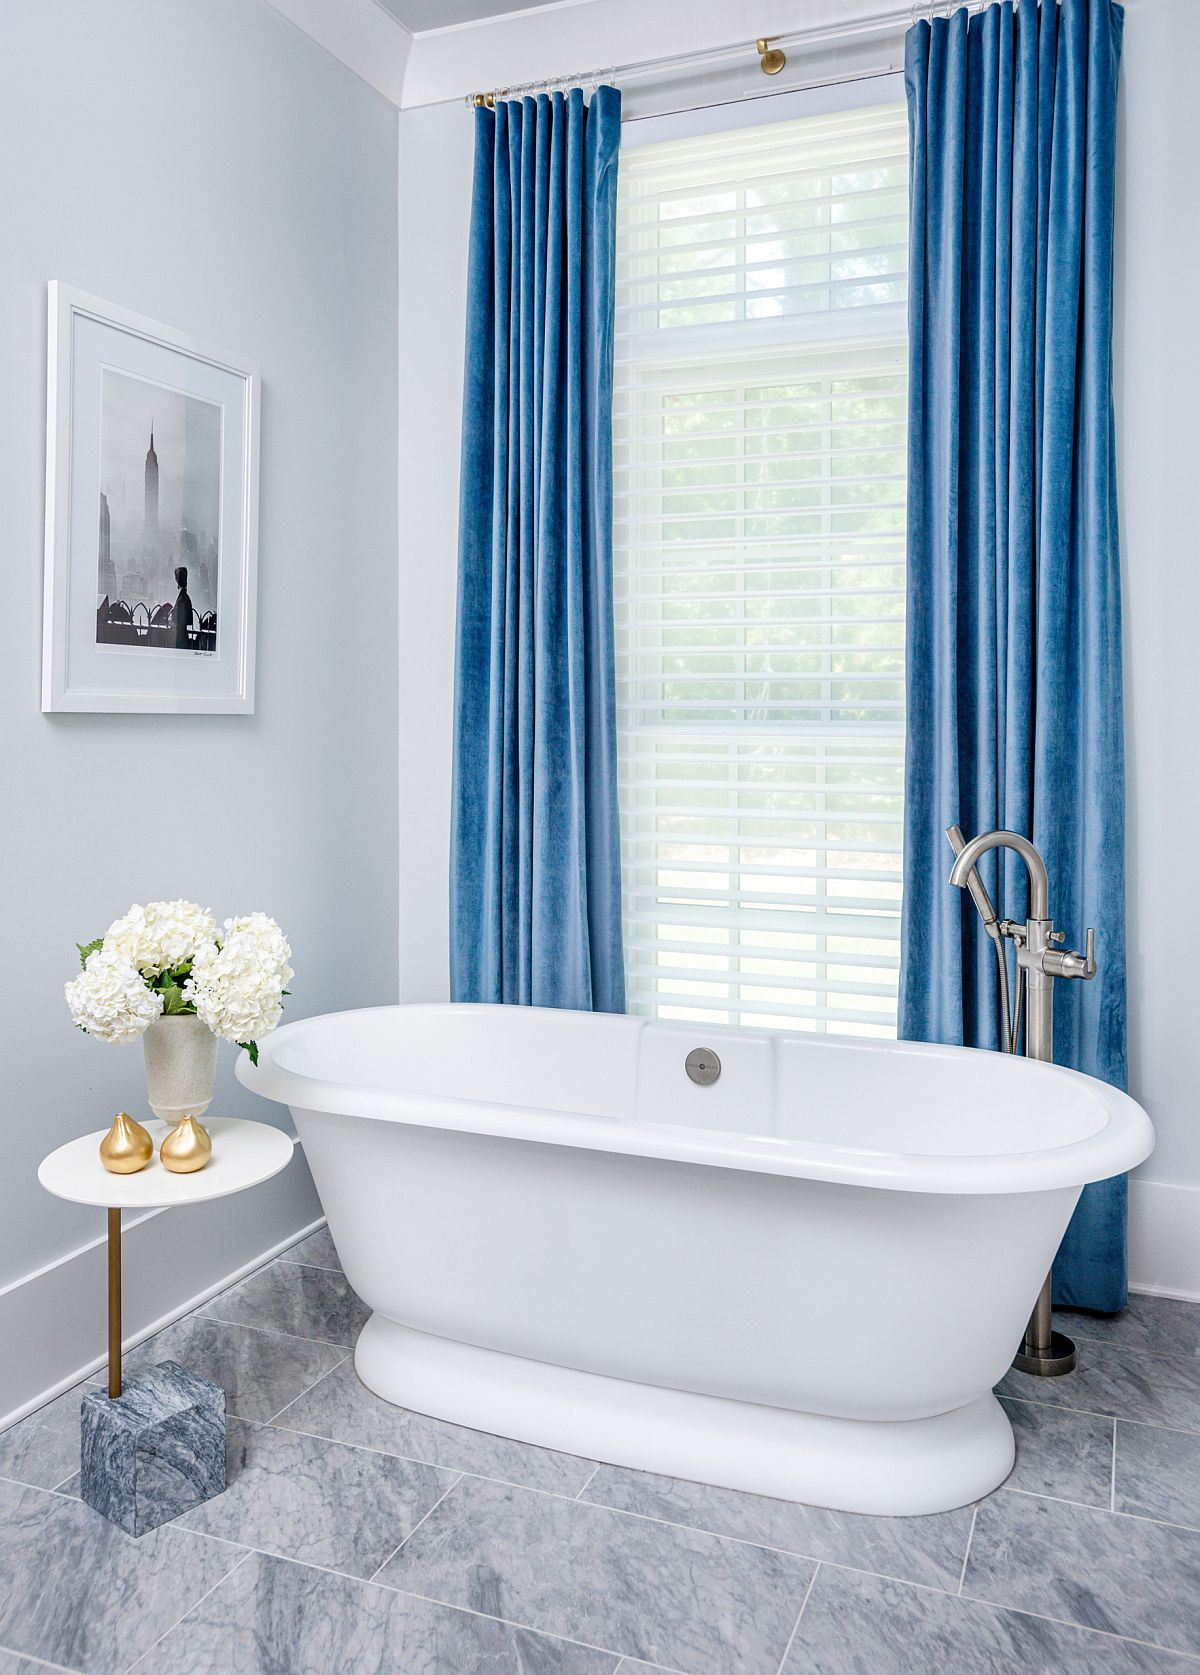 Drapes-in-blue-add-color-to-this-bathroom-in-white-with-a-modern-minimal-look-29237